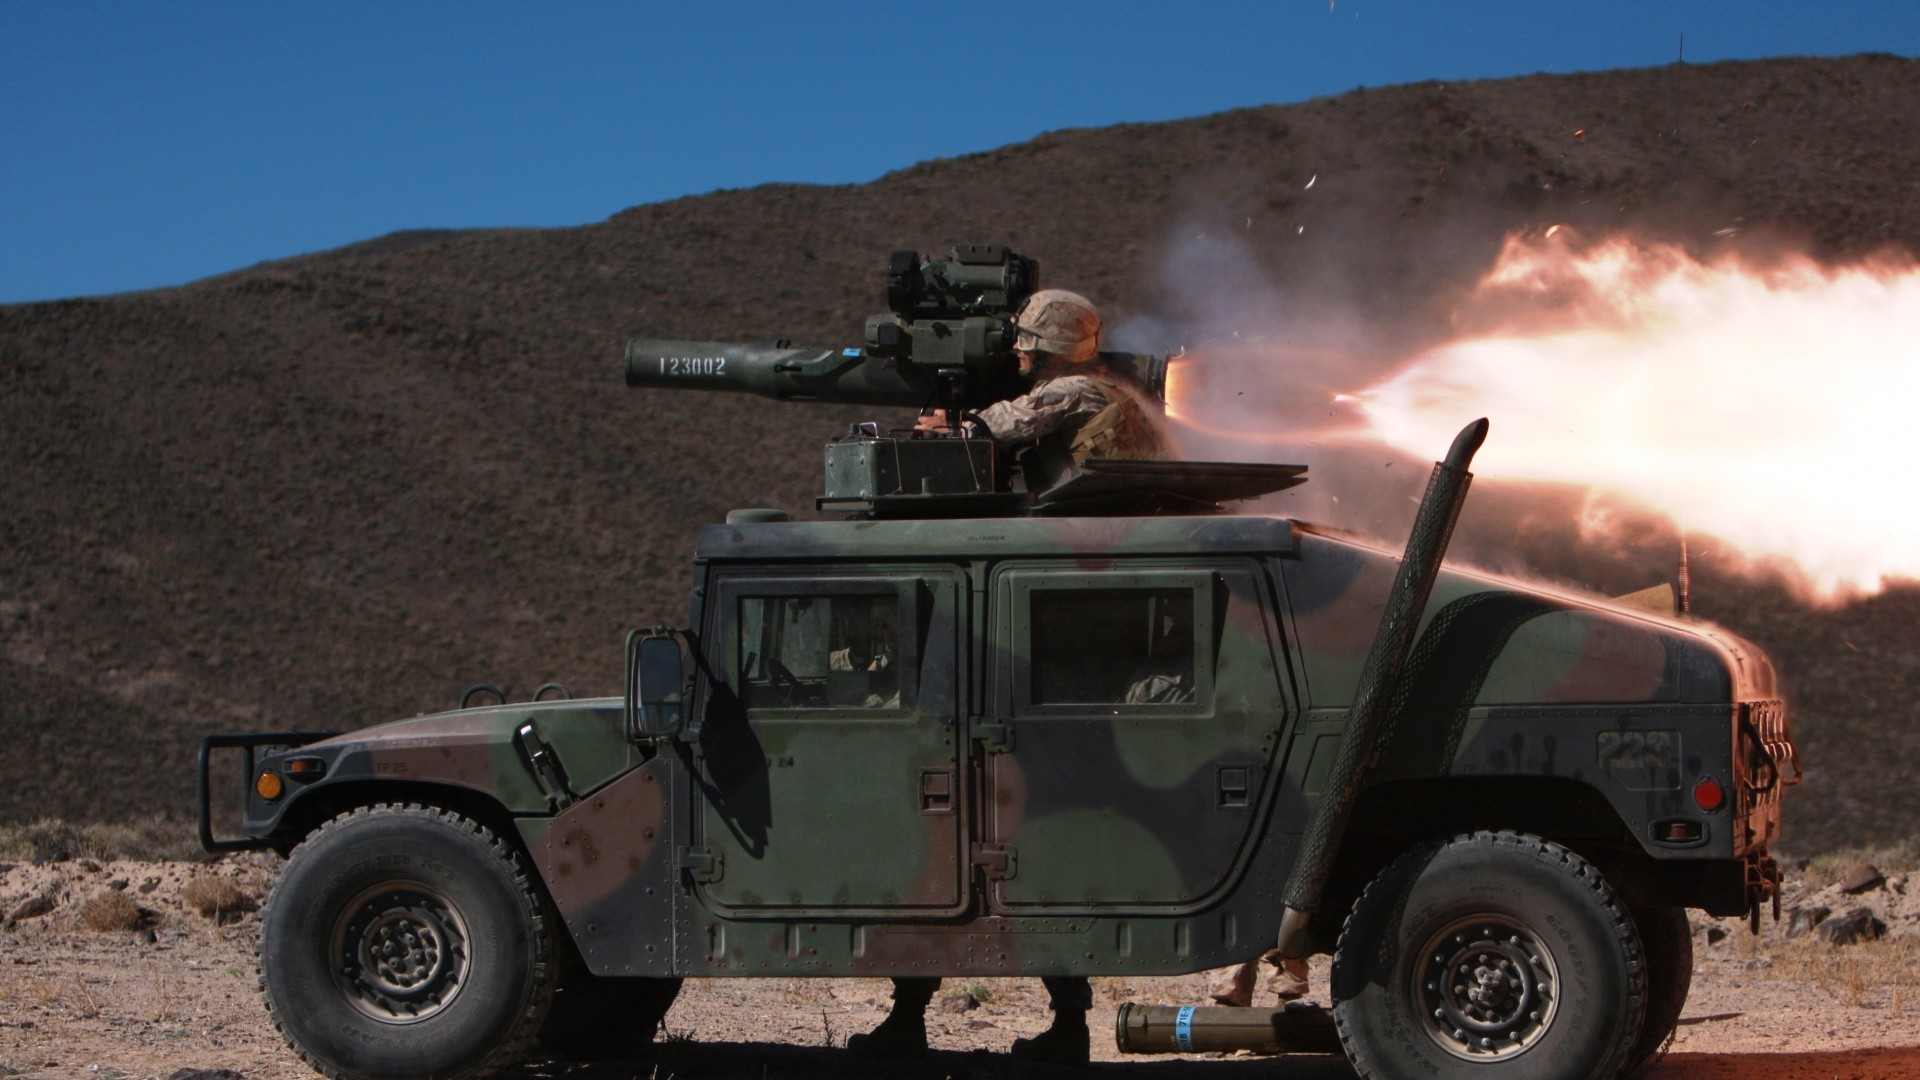 wallpaper humvee hmmwv suv rocket launch soldier  army military